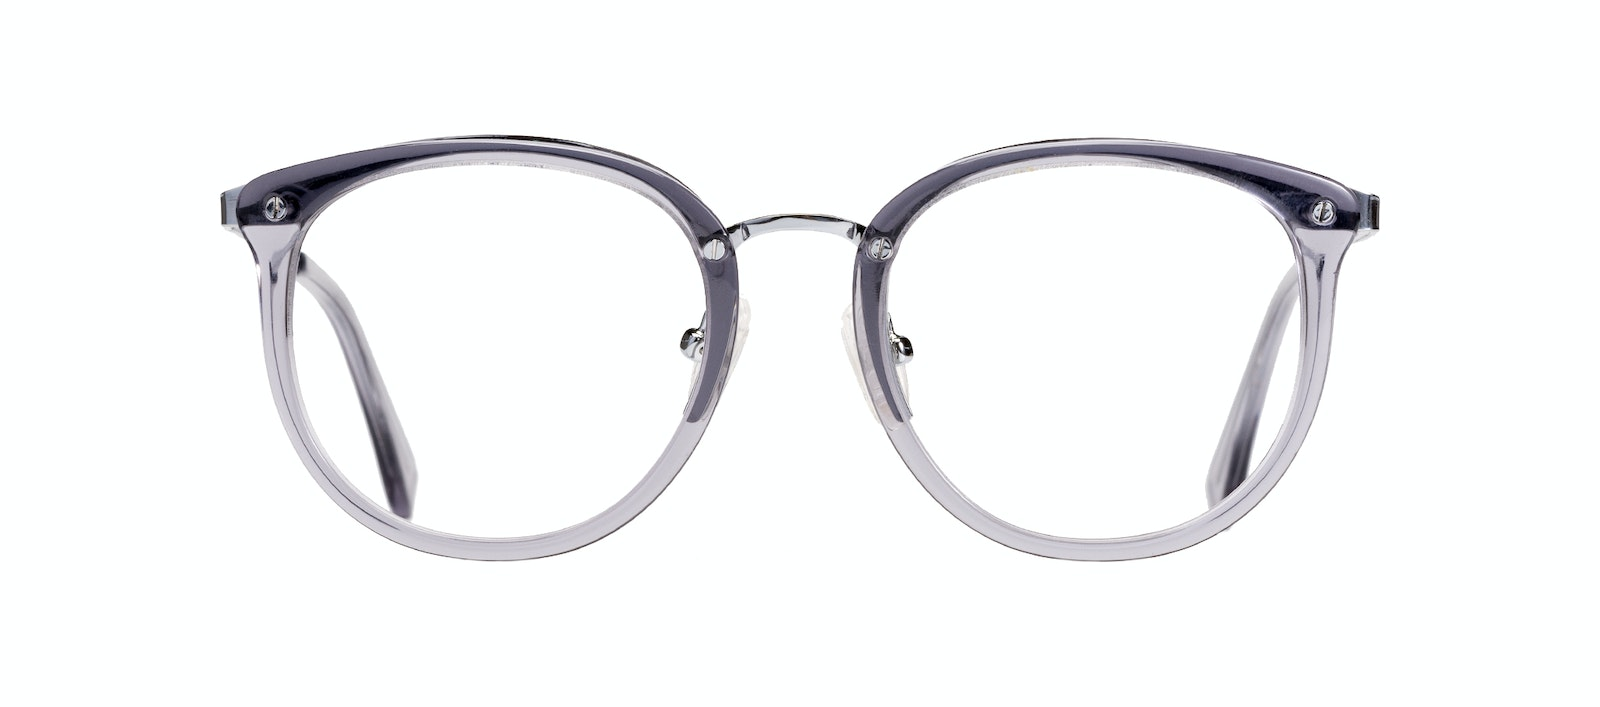 Affordable Fashion Glasses Round Eyeglasses Women Amaze Petite Cloud Front